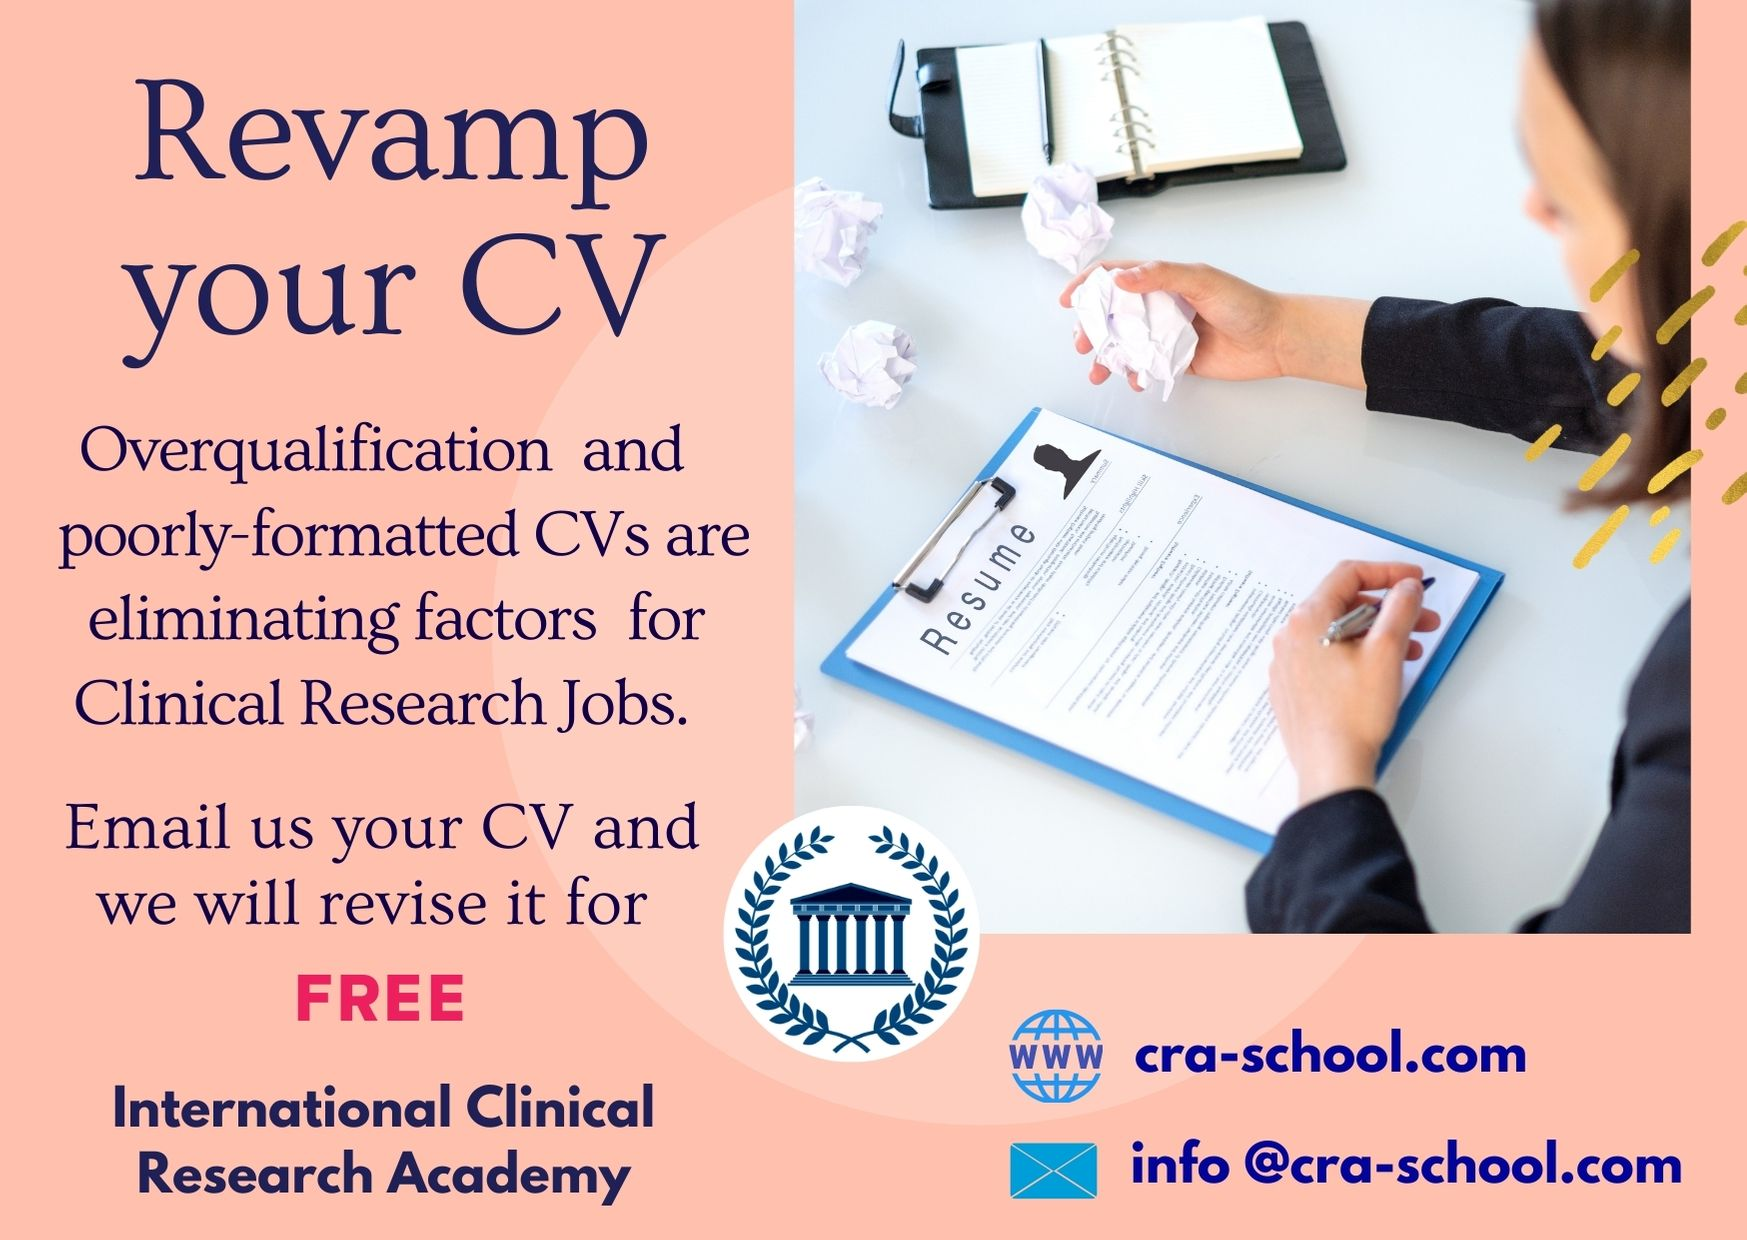 The CV Adaptation for clinical research jobs is one of our services.